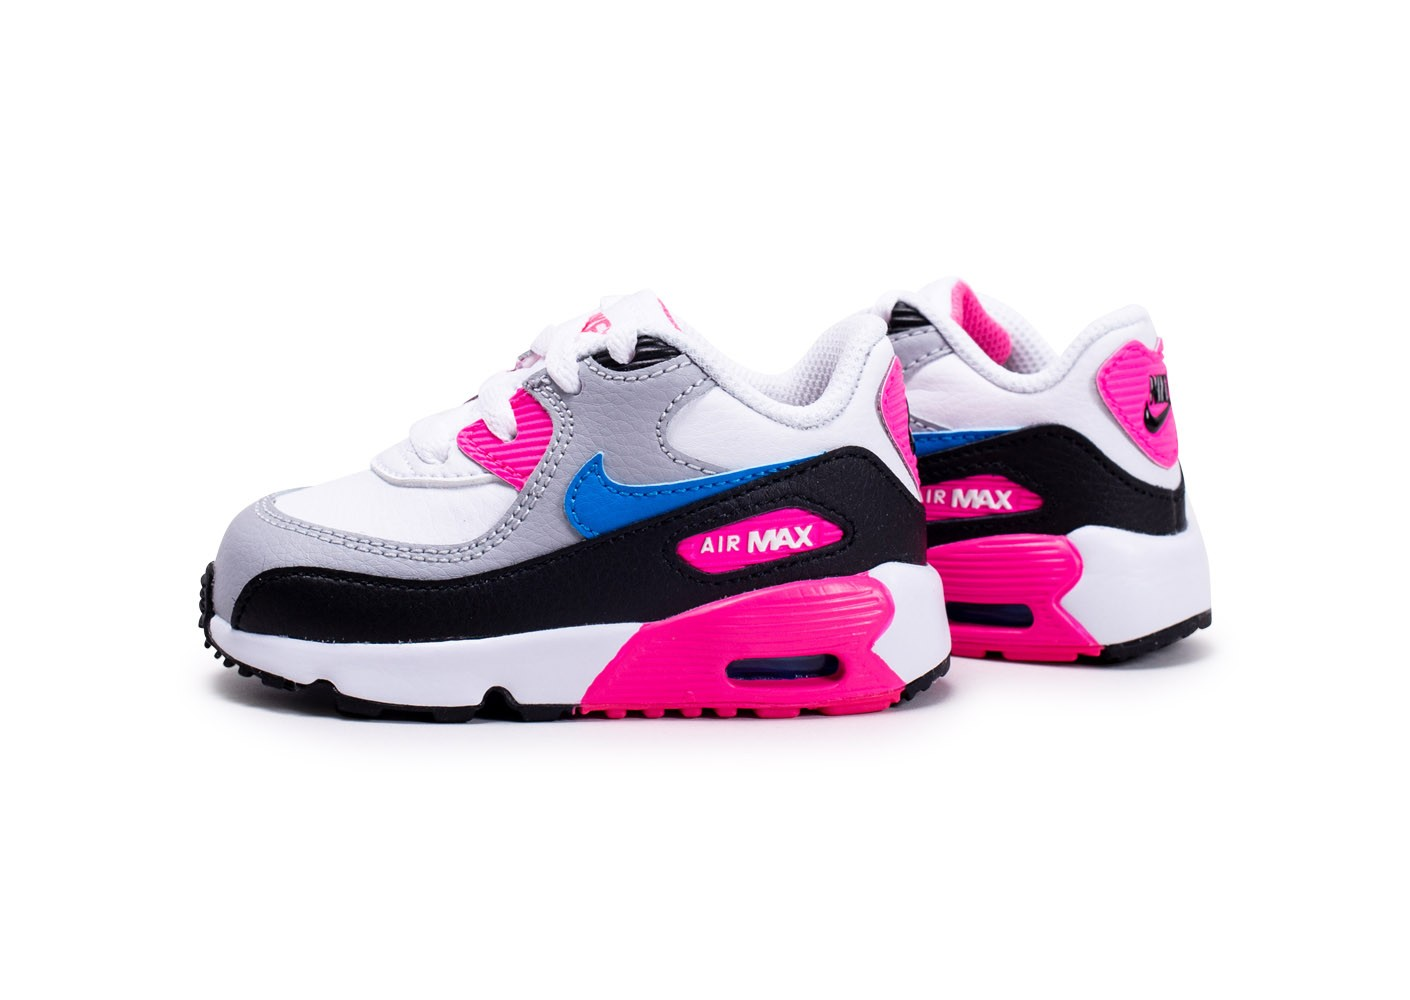 Nike Air Max 90 Leather blanc rose bleu bébé Chaussures